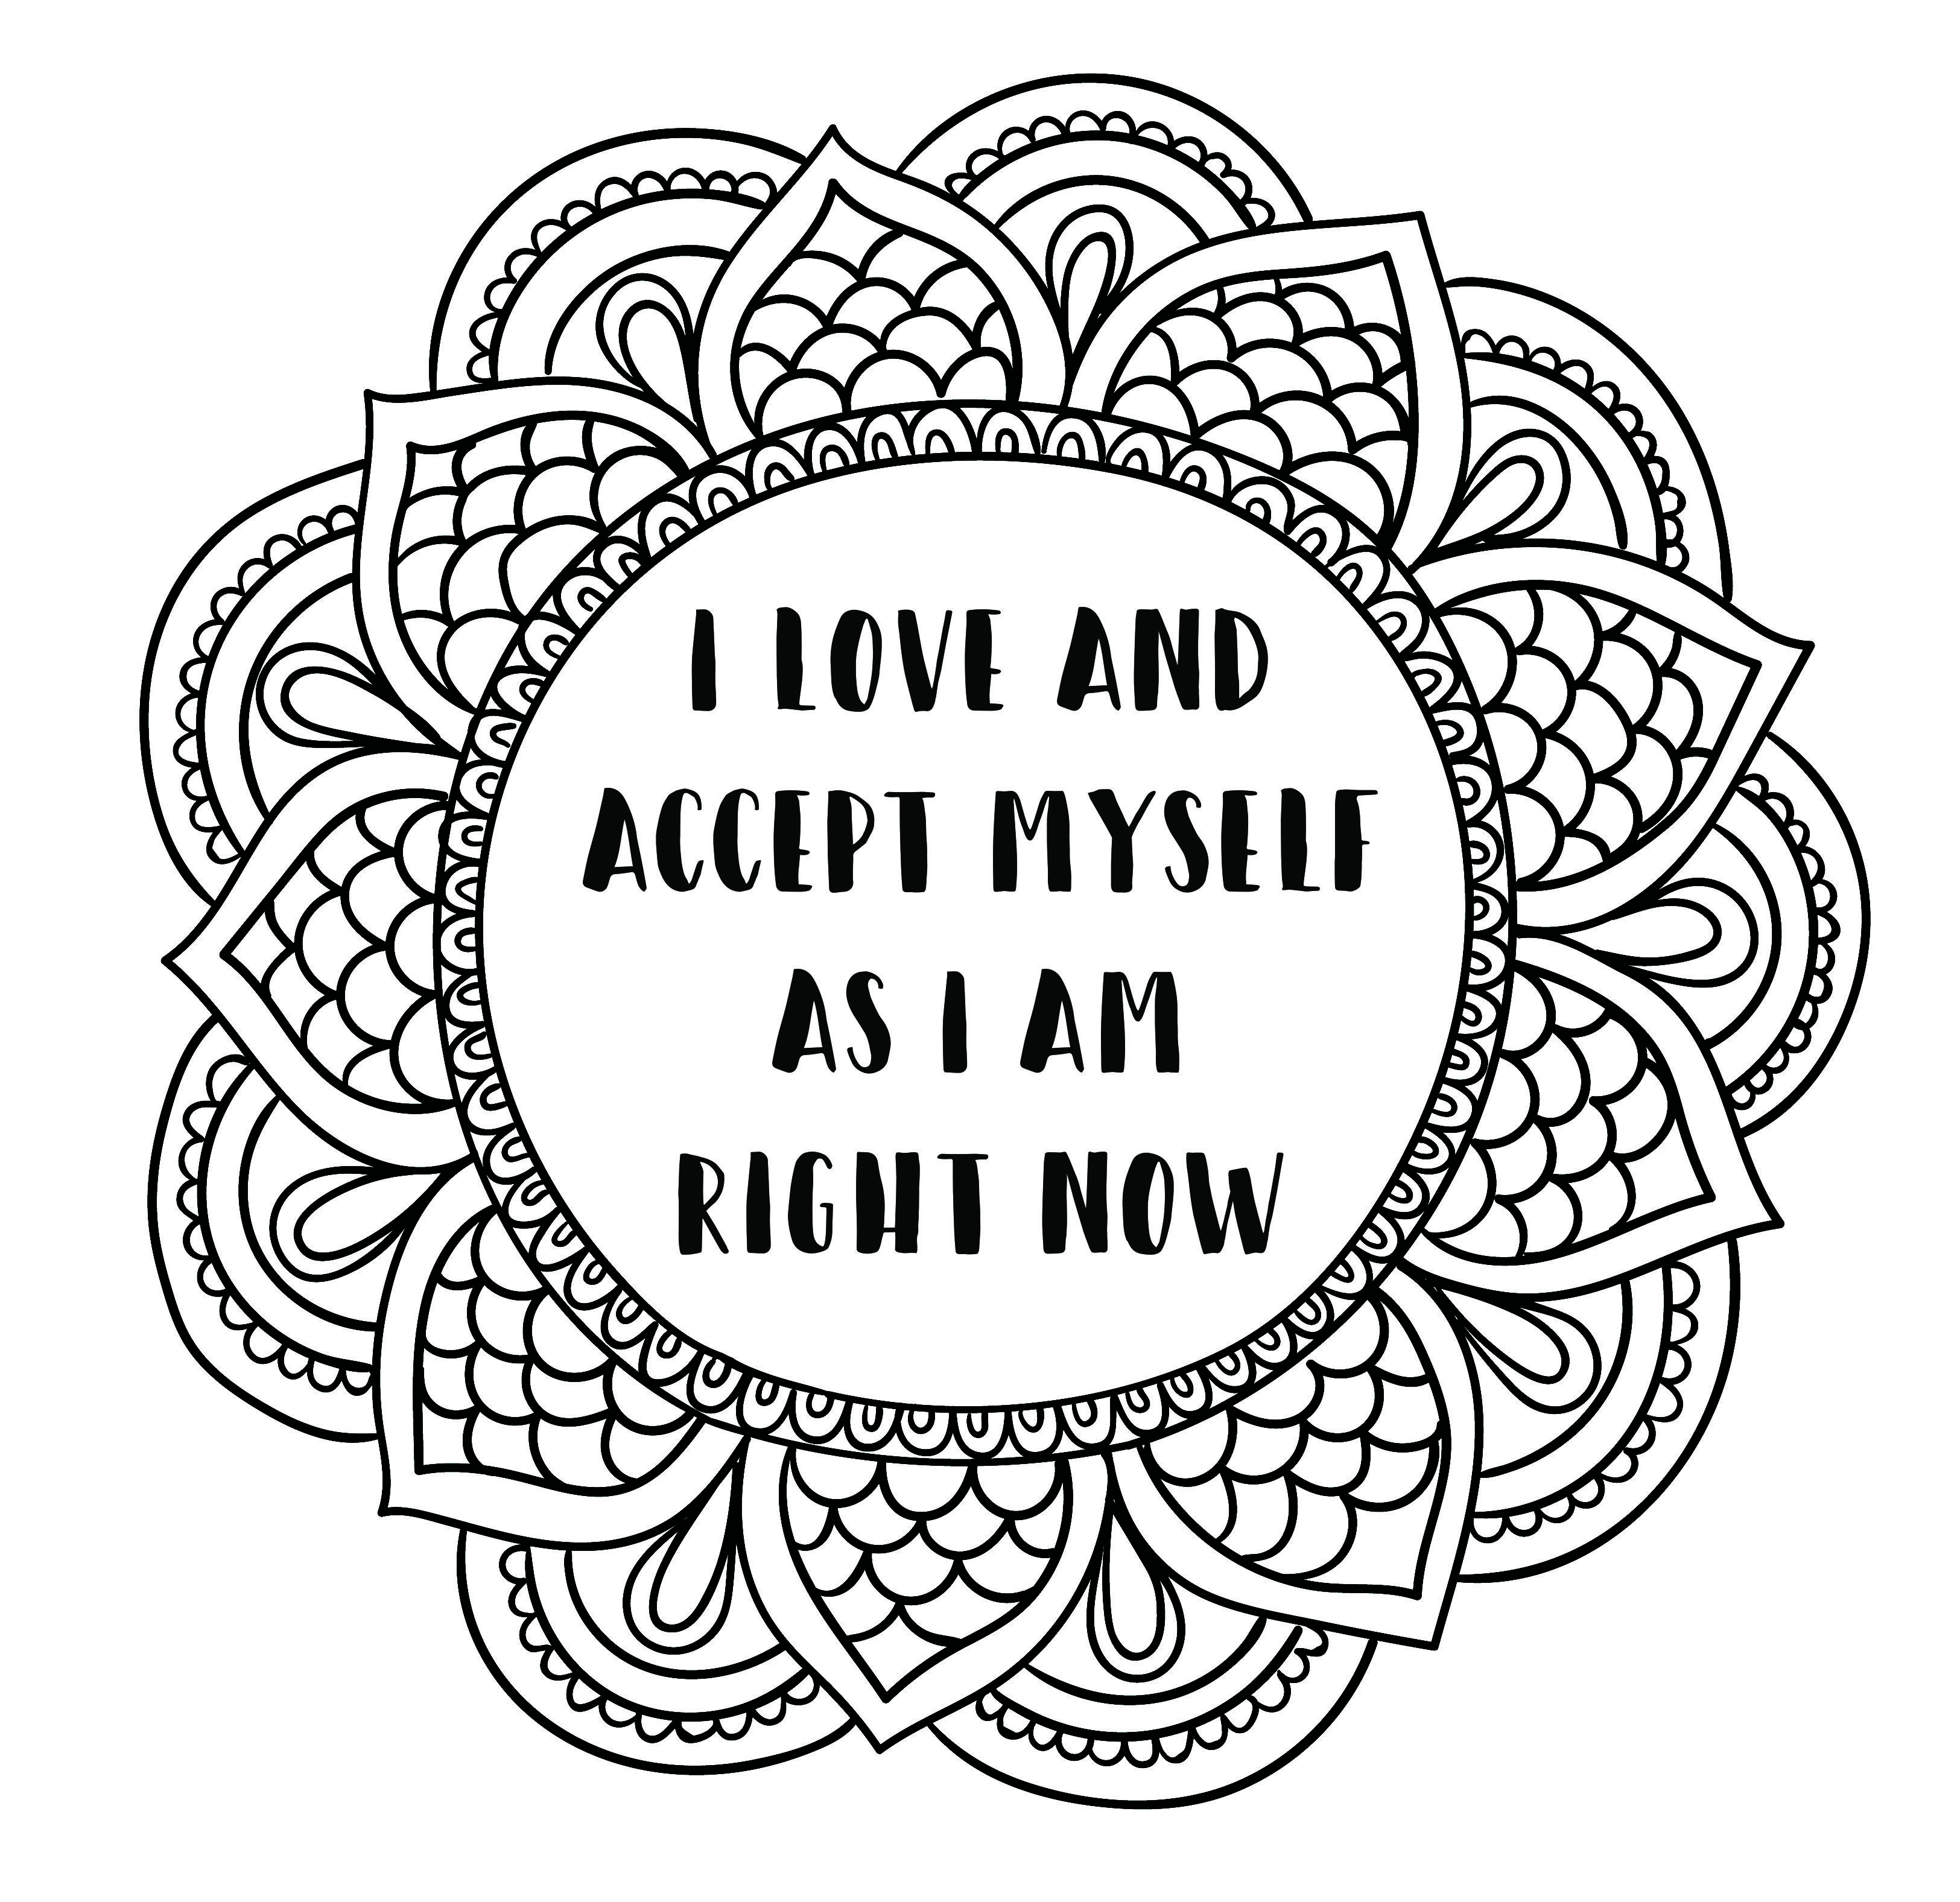 Mandala Style Coloring Page Printable Self Love Affirmation Created By Me Mandala Design Love Coloring Pages Heart Coloring Pages Coloring Pages Inspirational